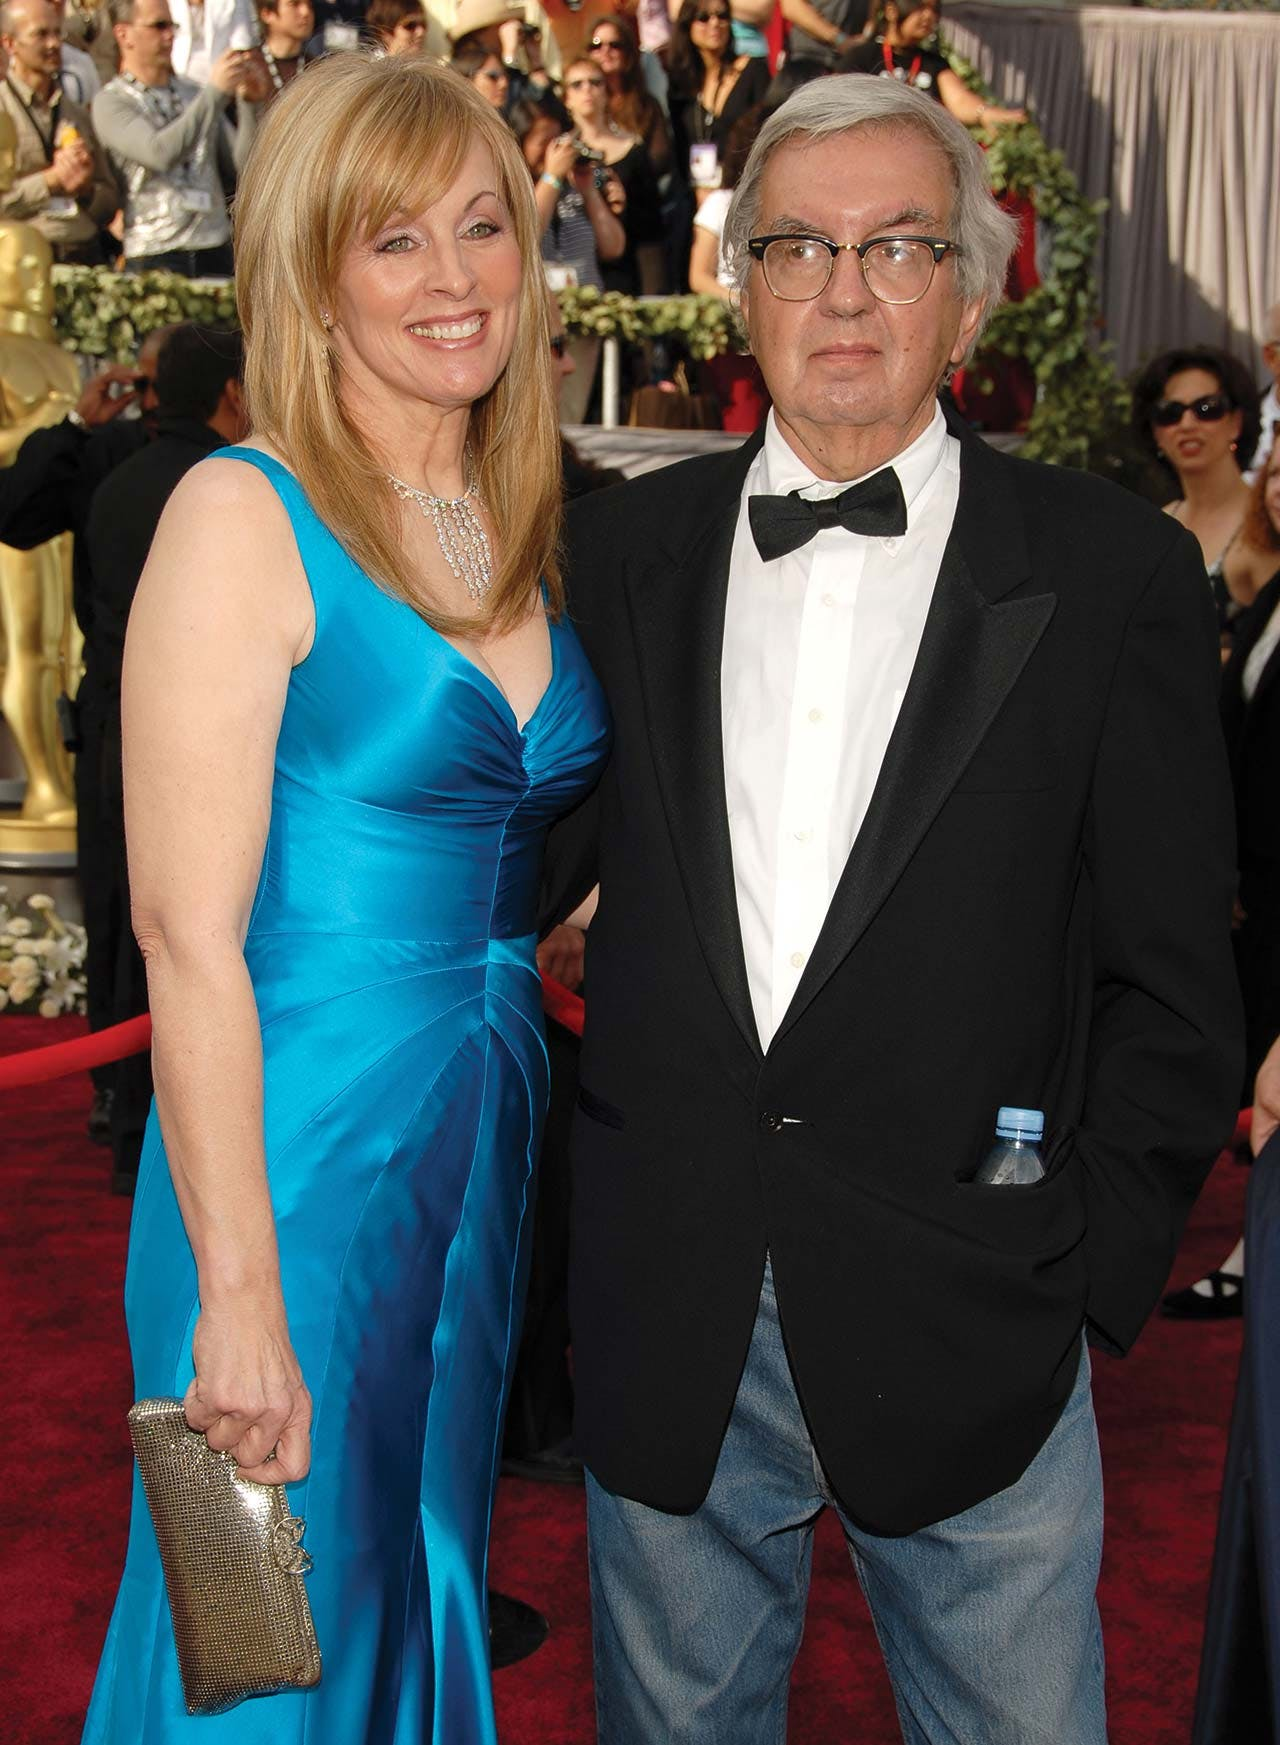 In his late sixties, standing on the red carpet with Ossana at the 2006 Academy Awards.